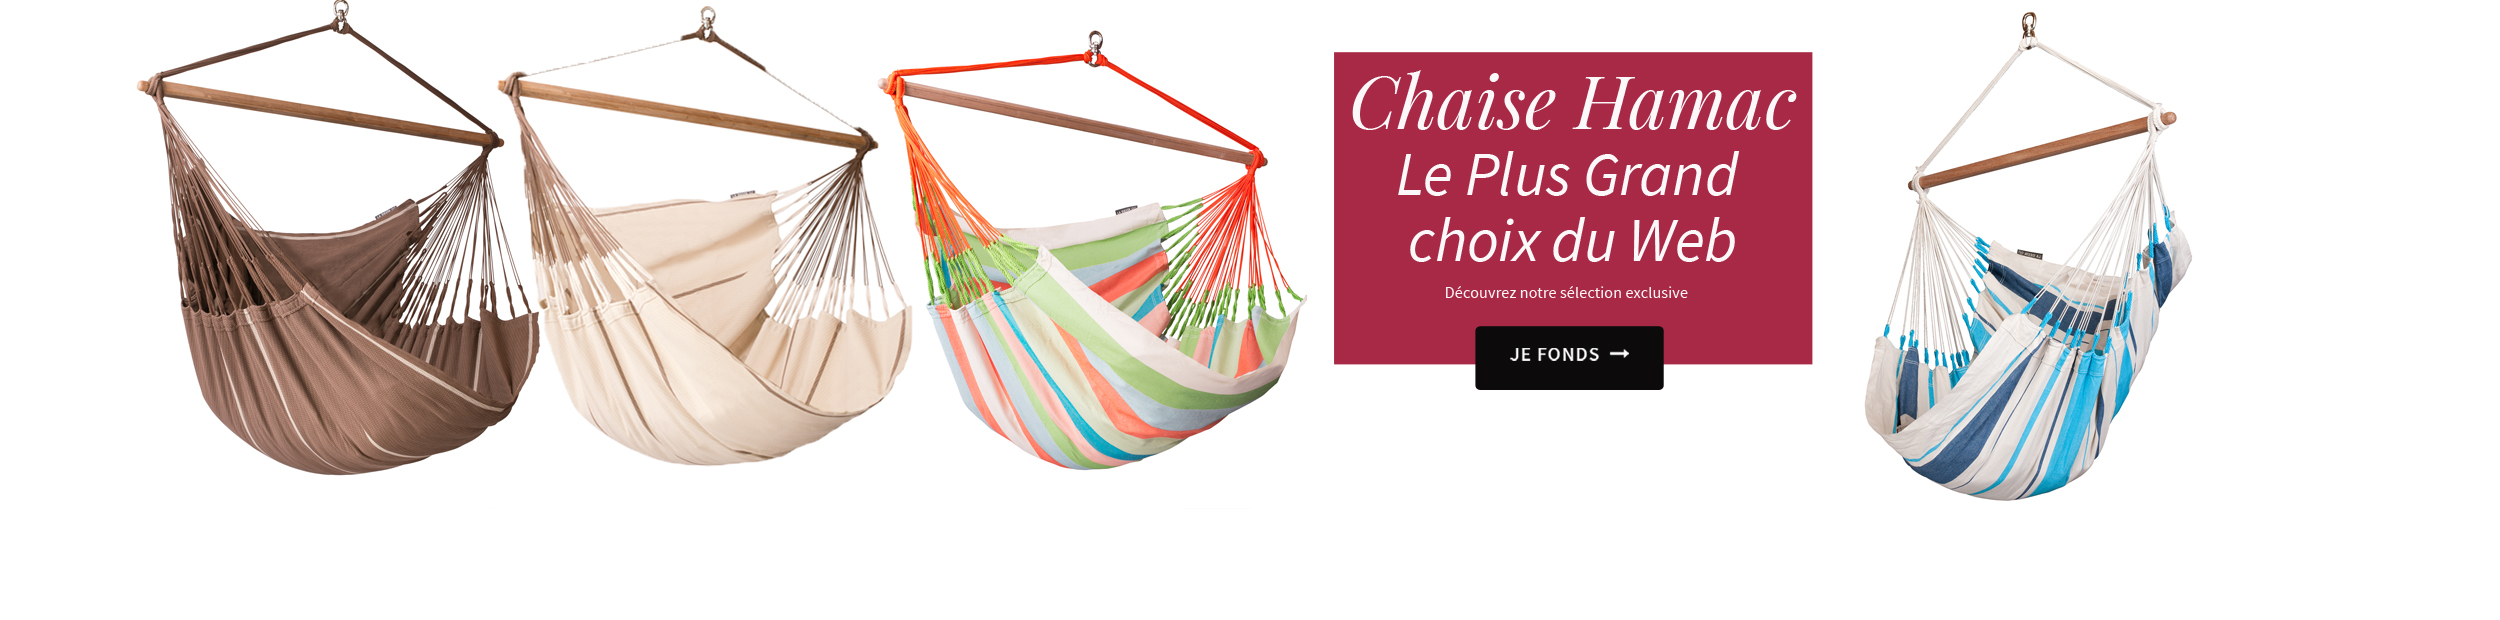 Chaise-Hamac le plus grand choix du Web